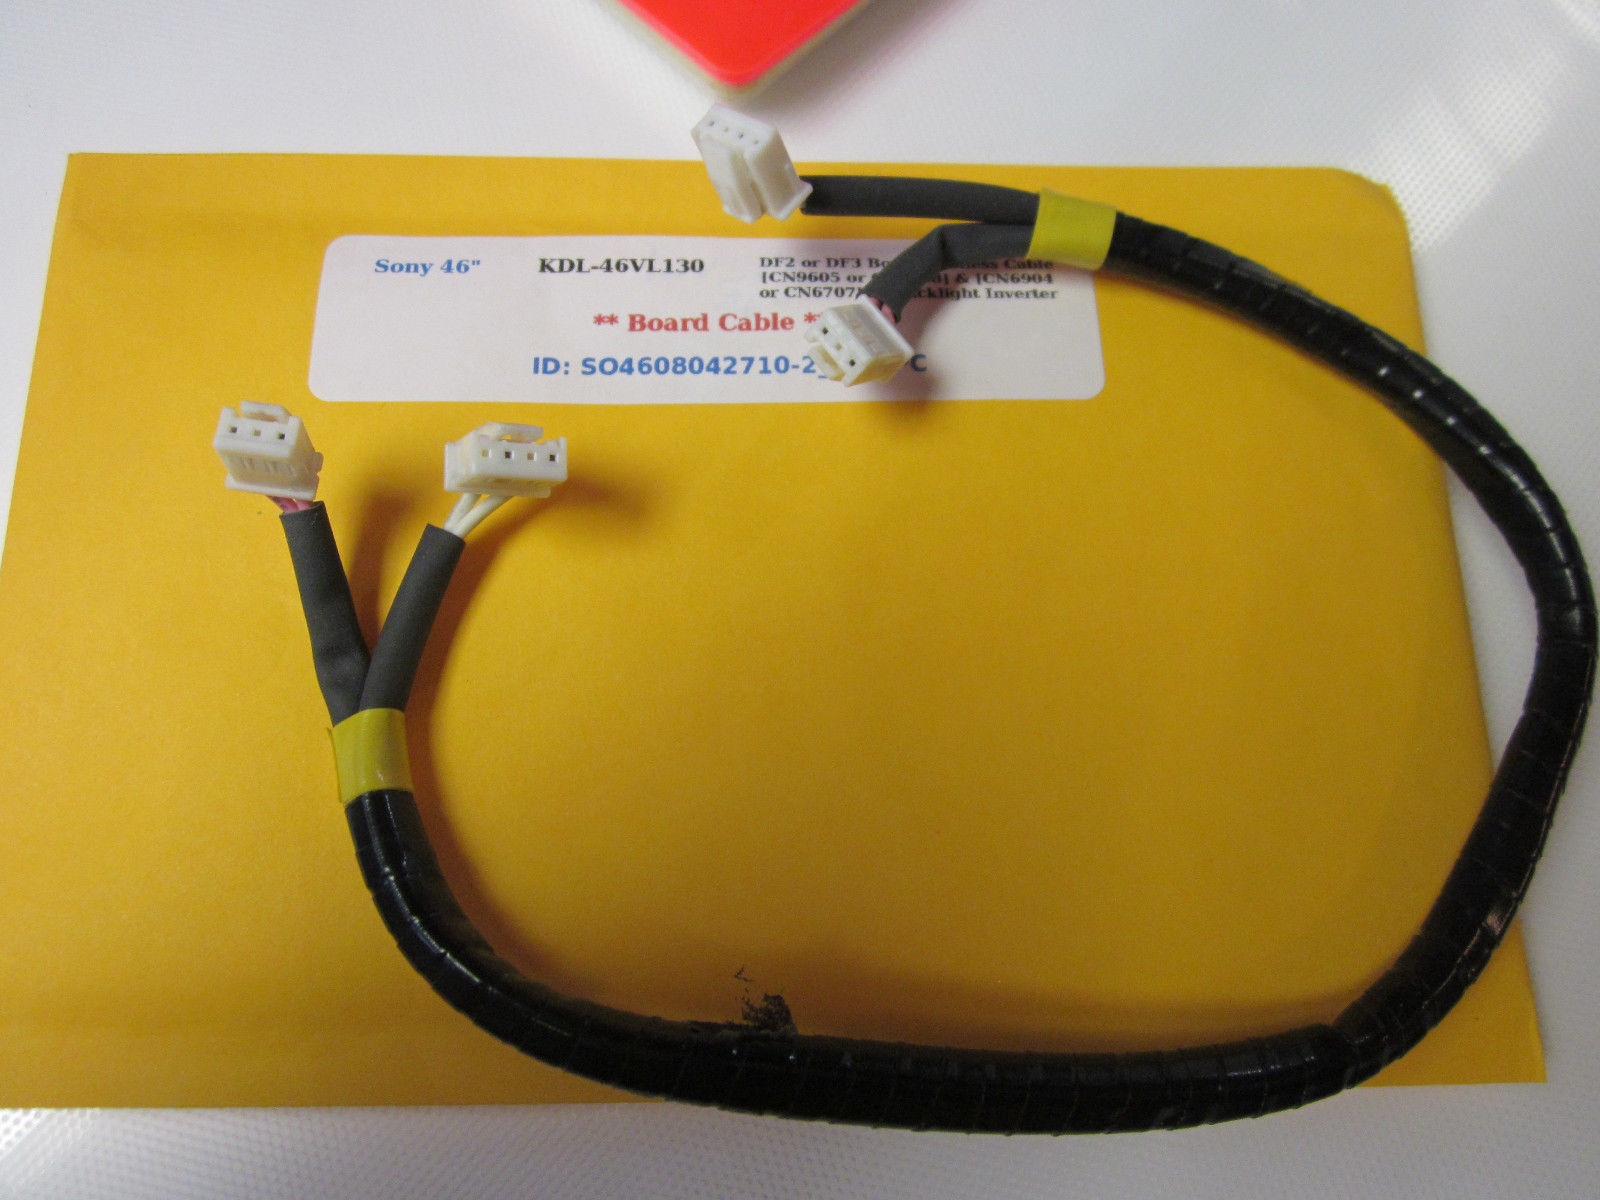 Sony KDL-46VL130 DF2 or DF3 Board Harness Cable [CN9605 or CN6708] & [CN6904 or